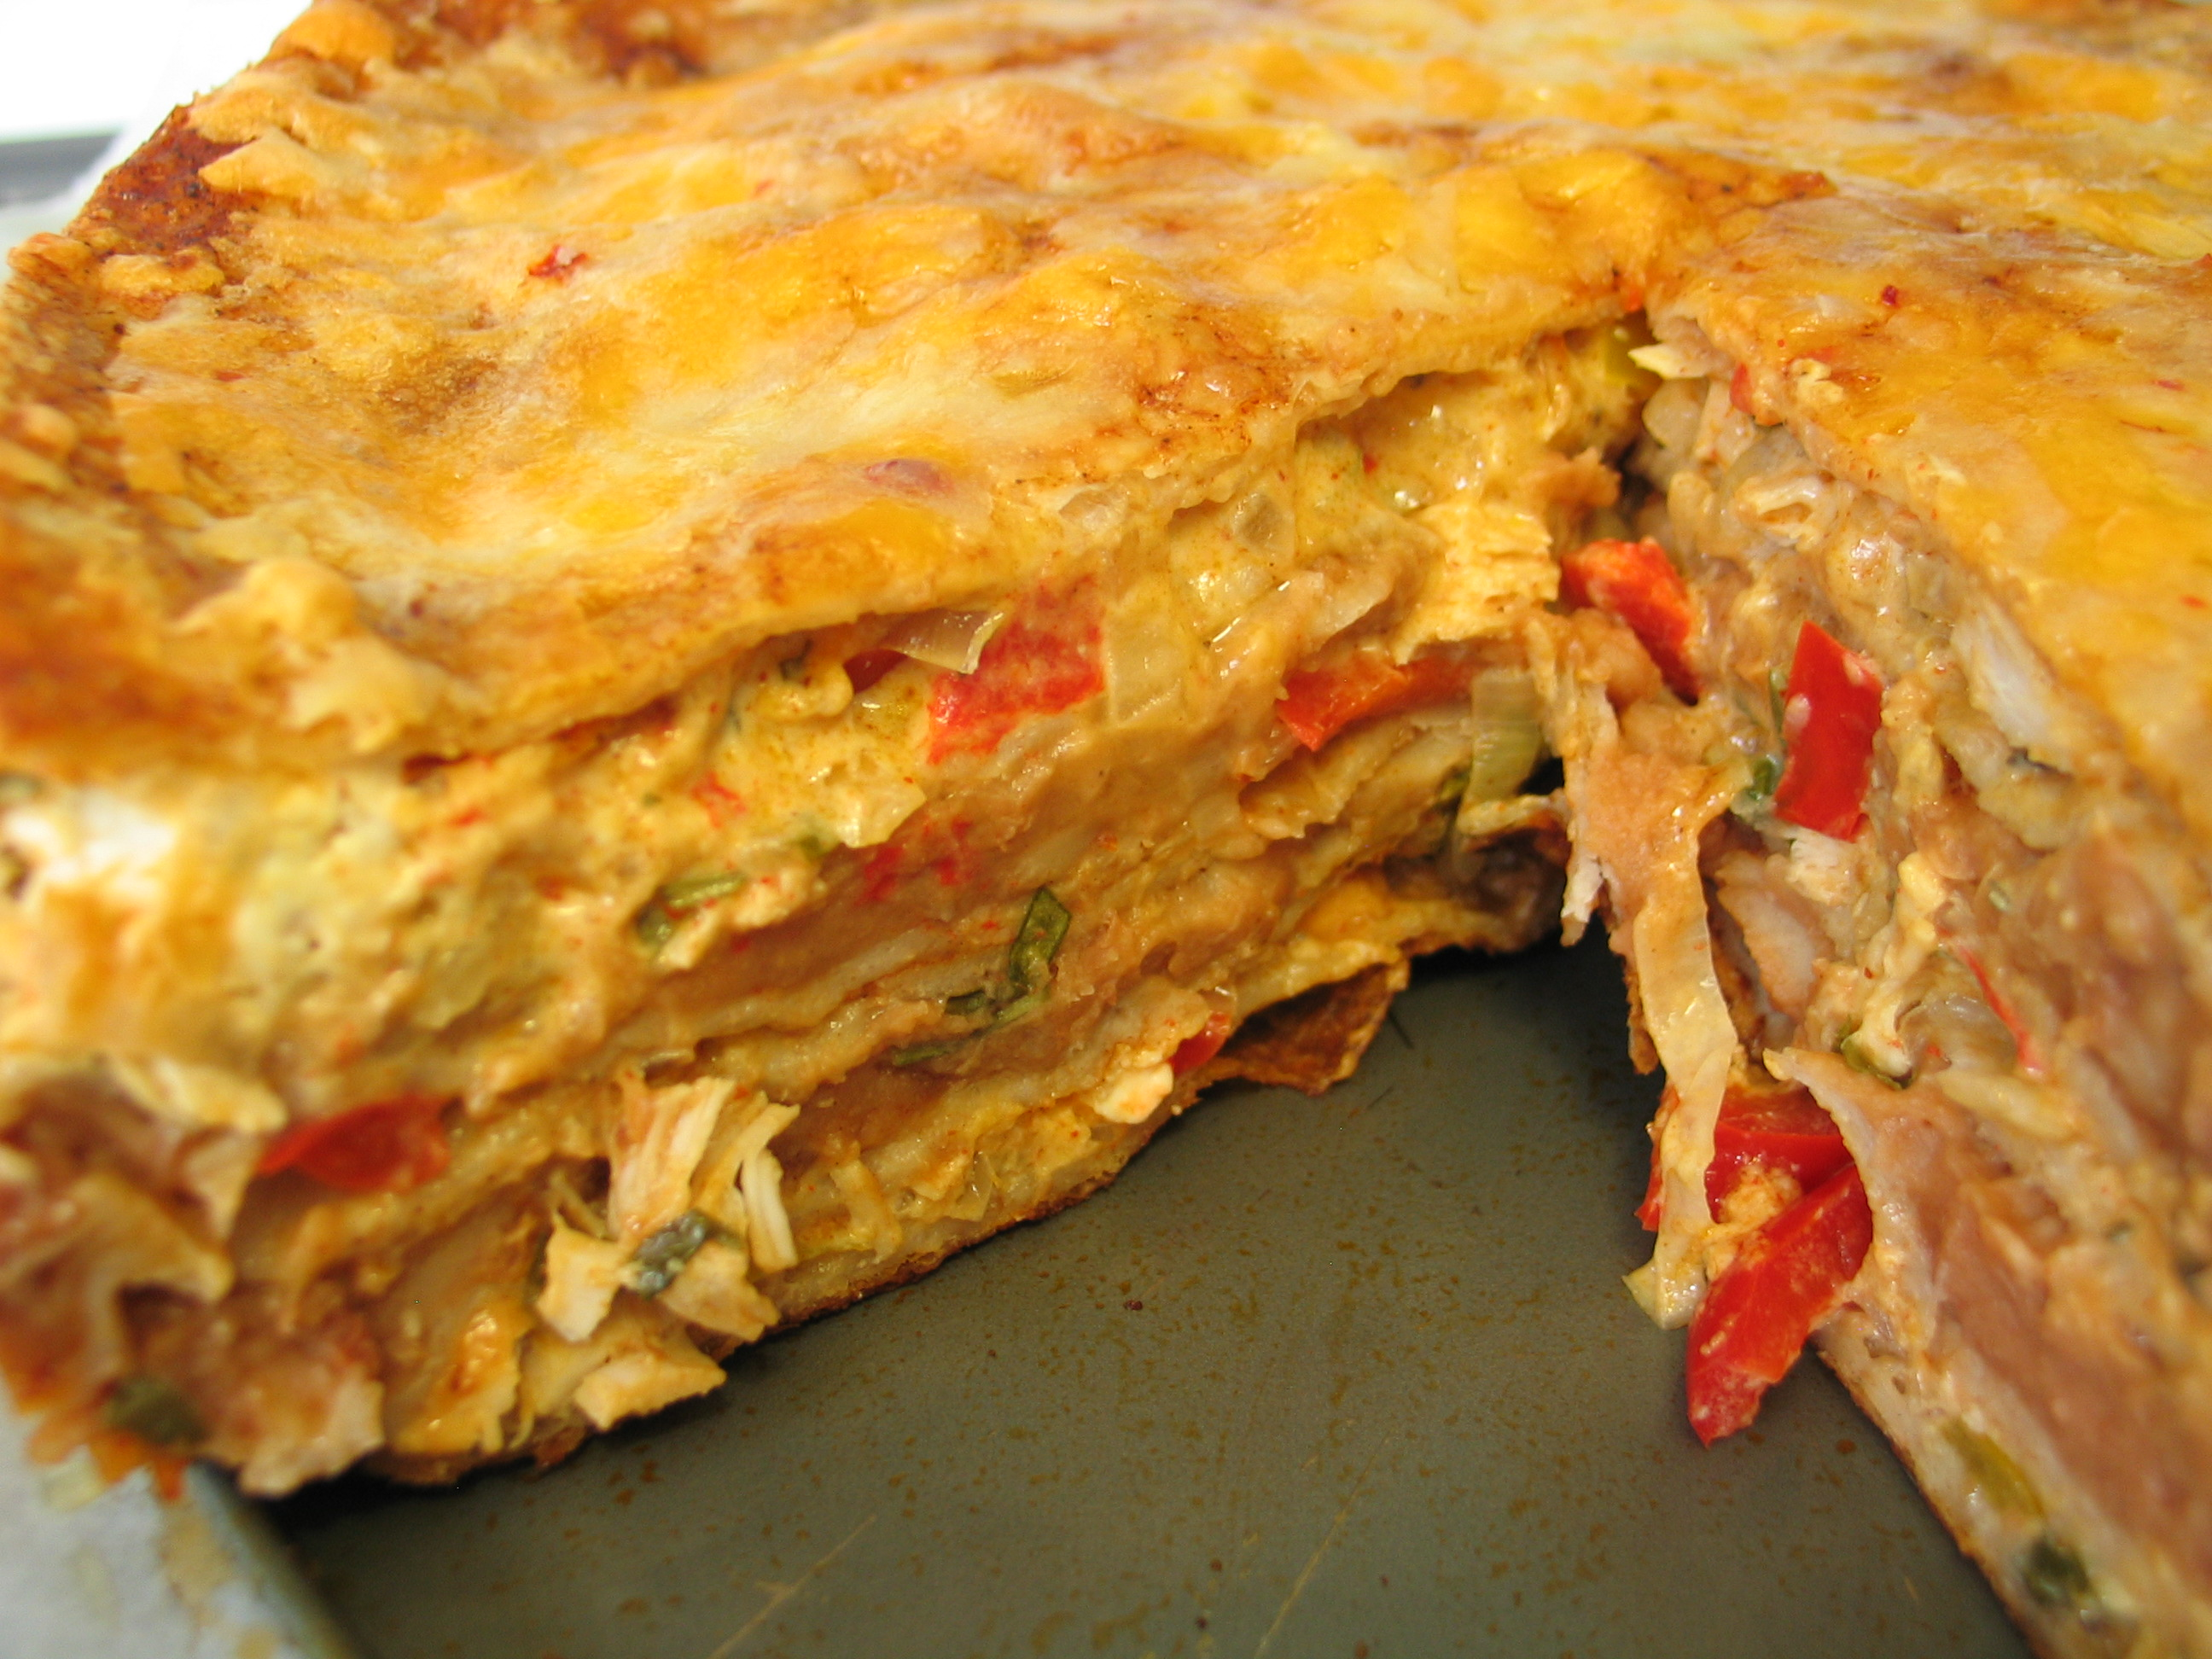 Deanna S Daughter Chicken Tortilla Pie